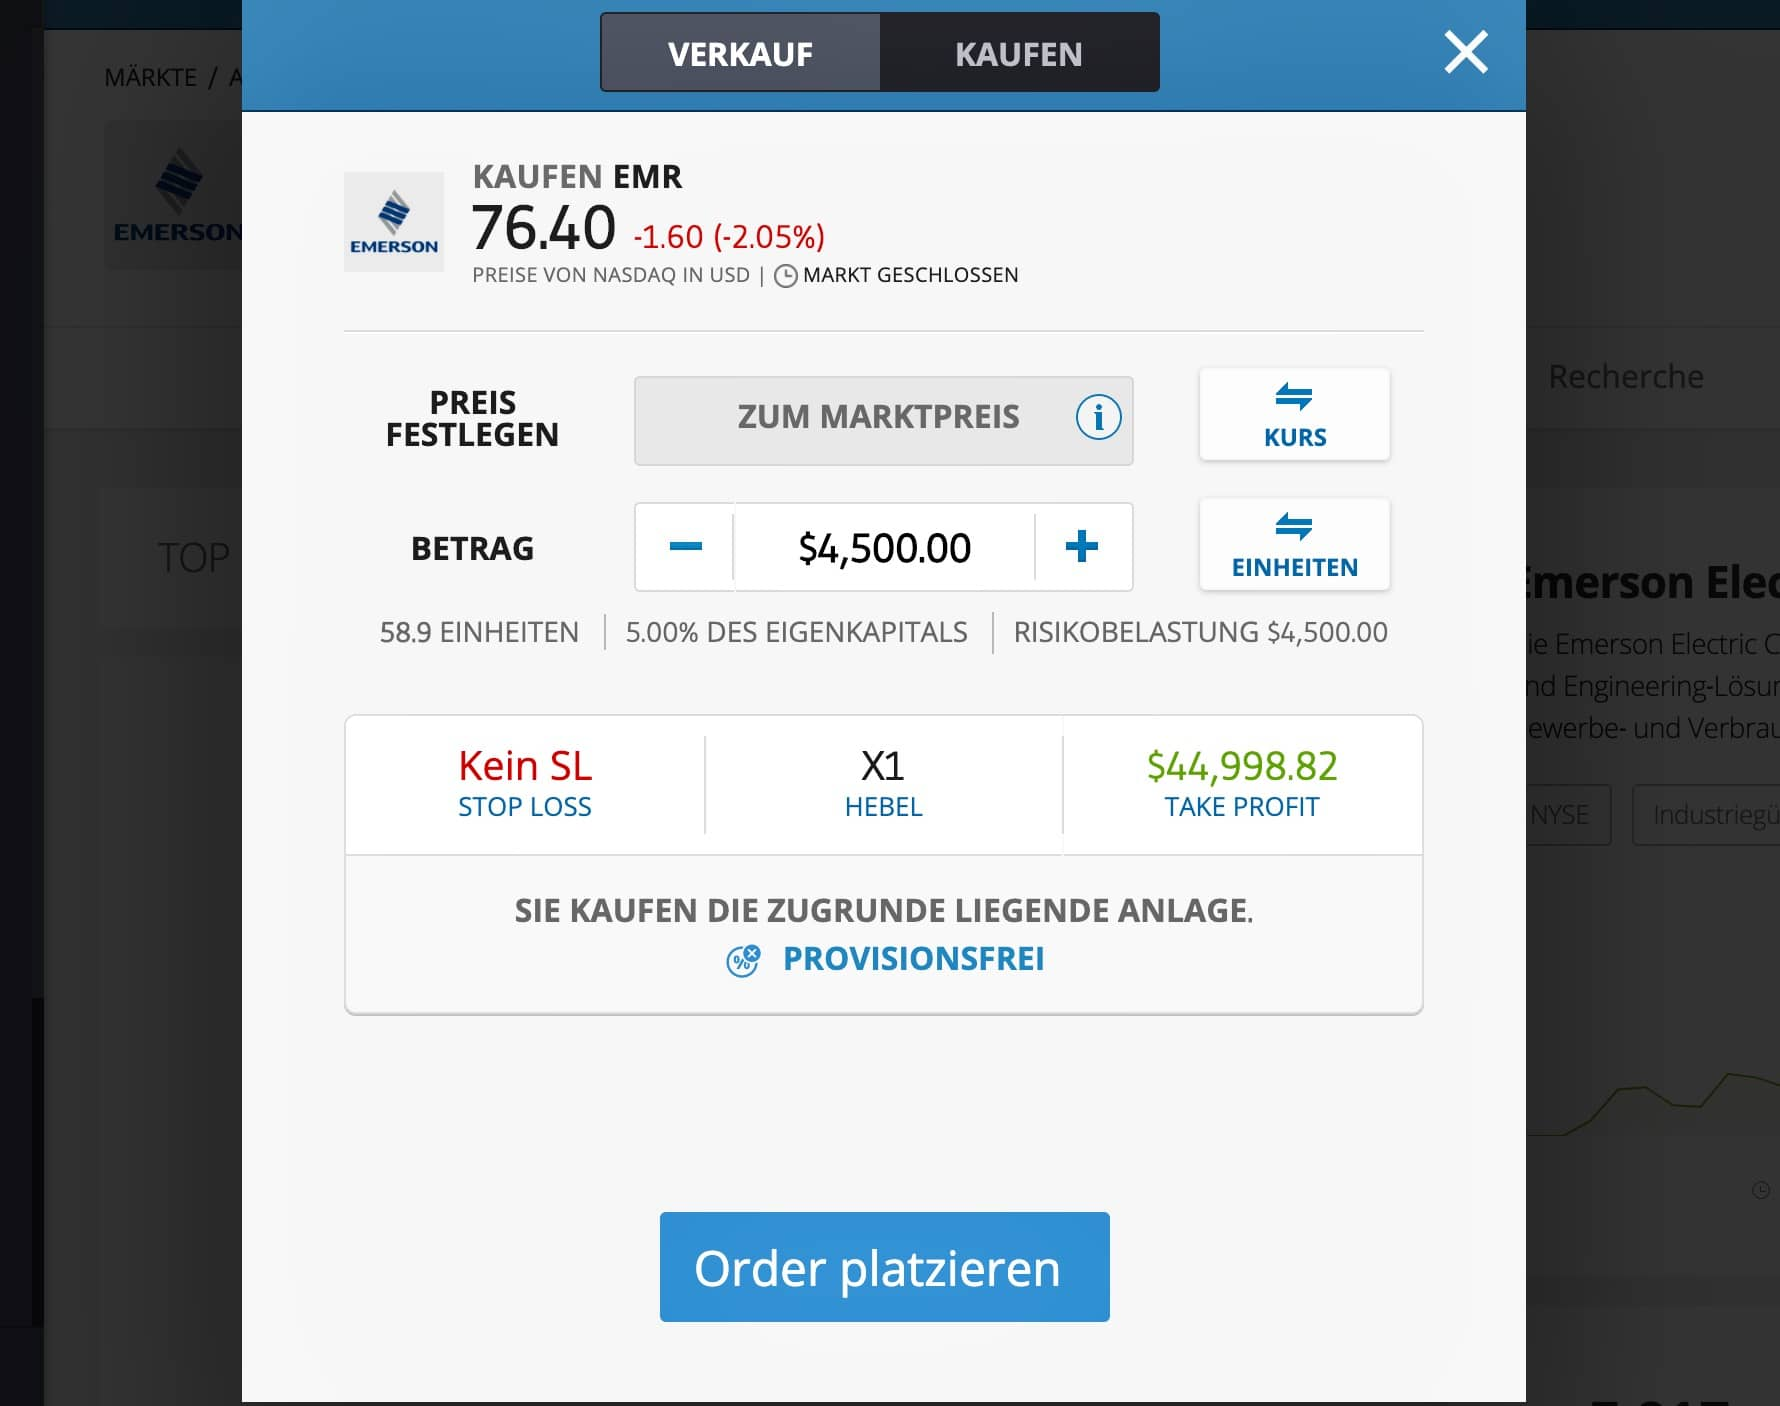 Emerson Electric Aktie kaufen_etoro